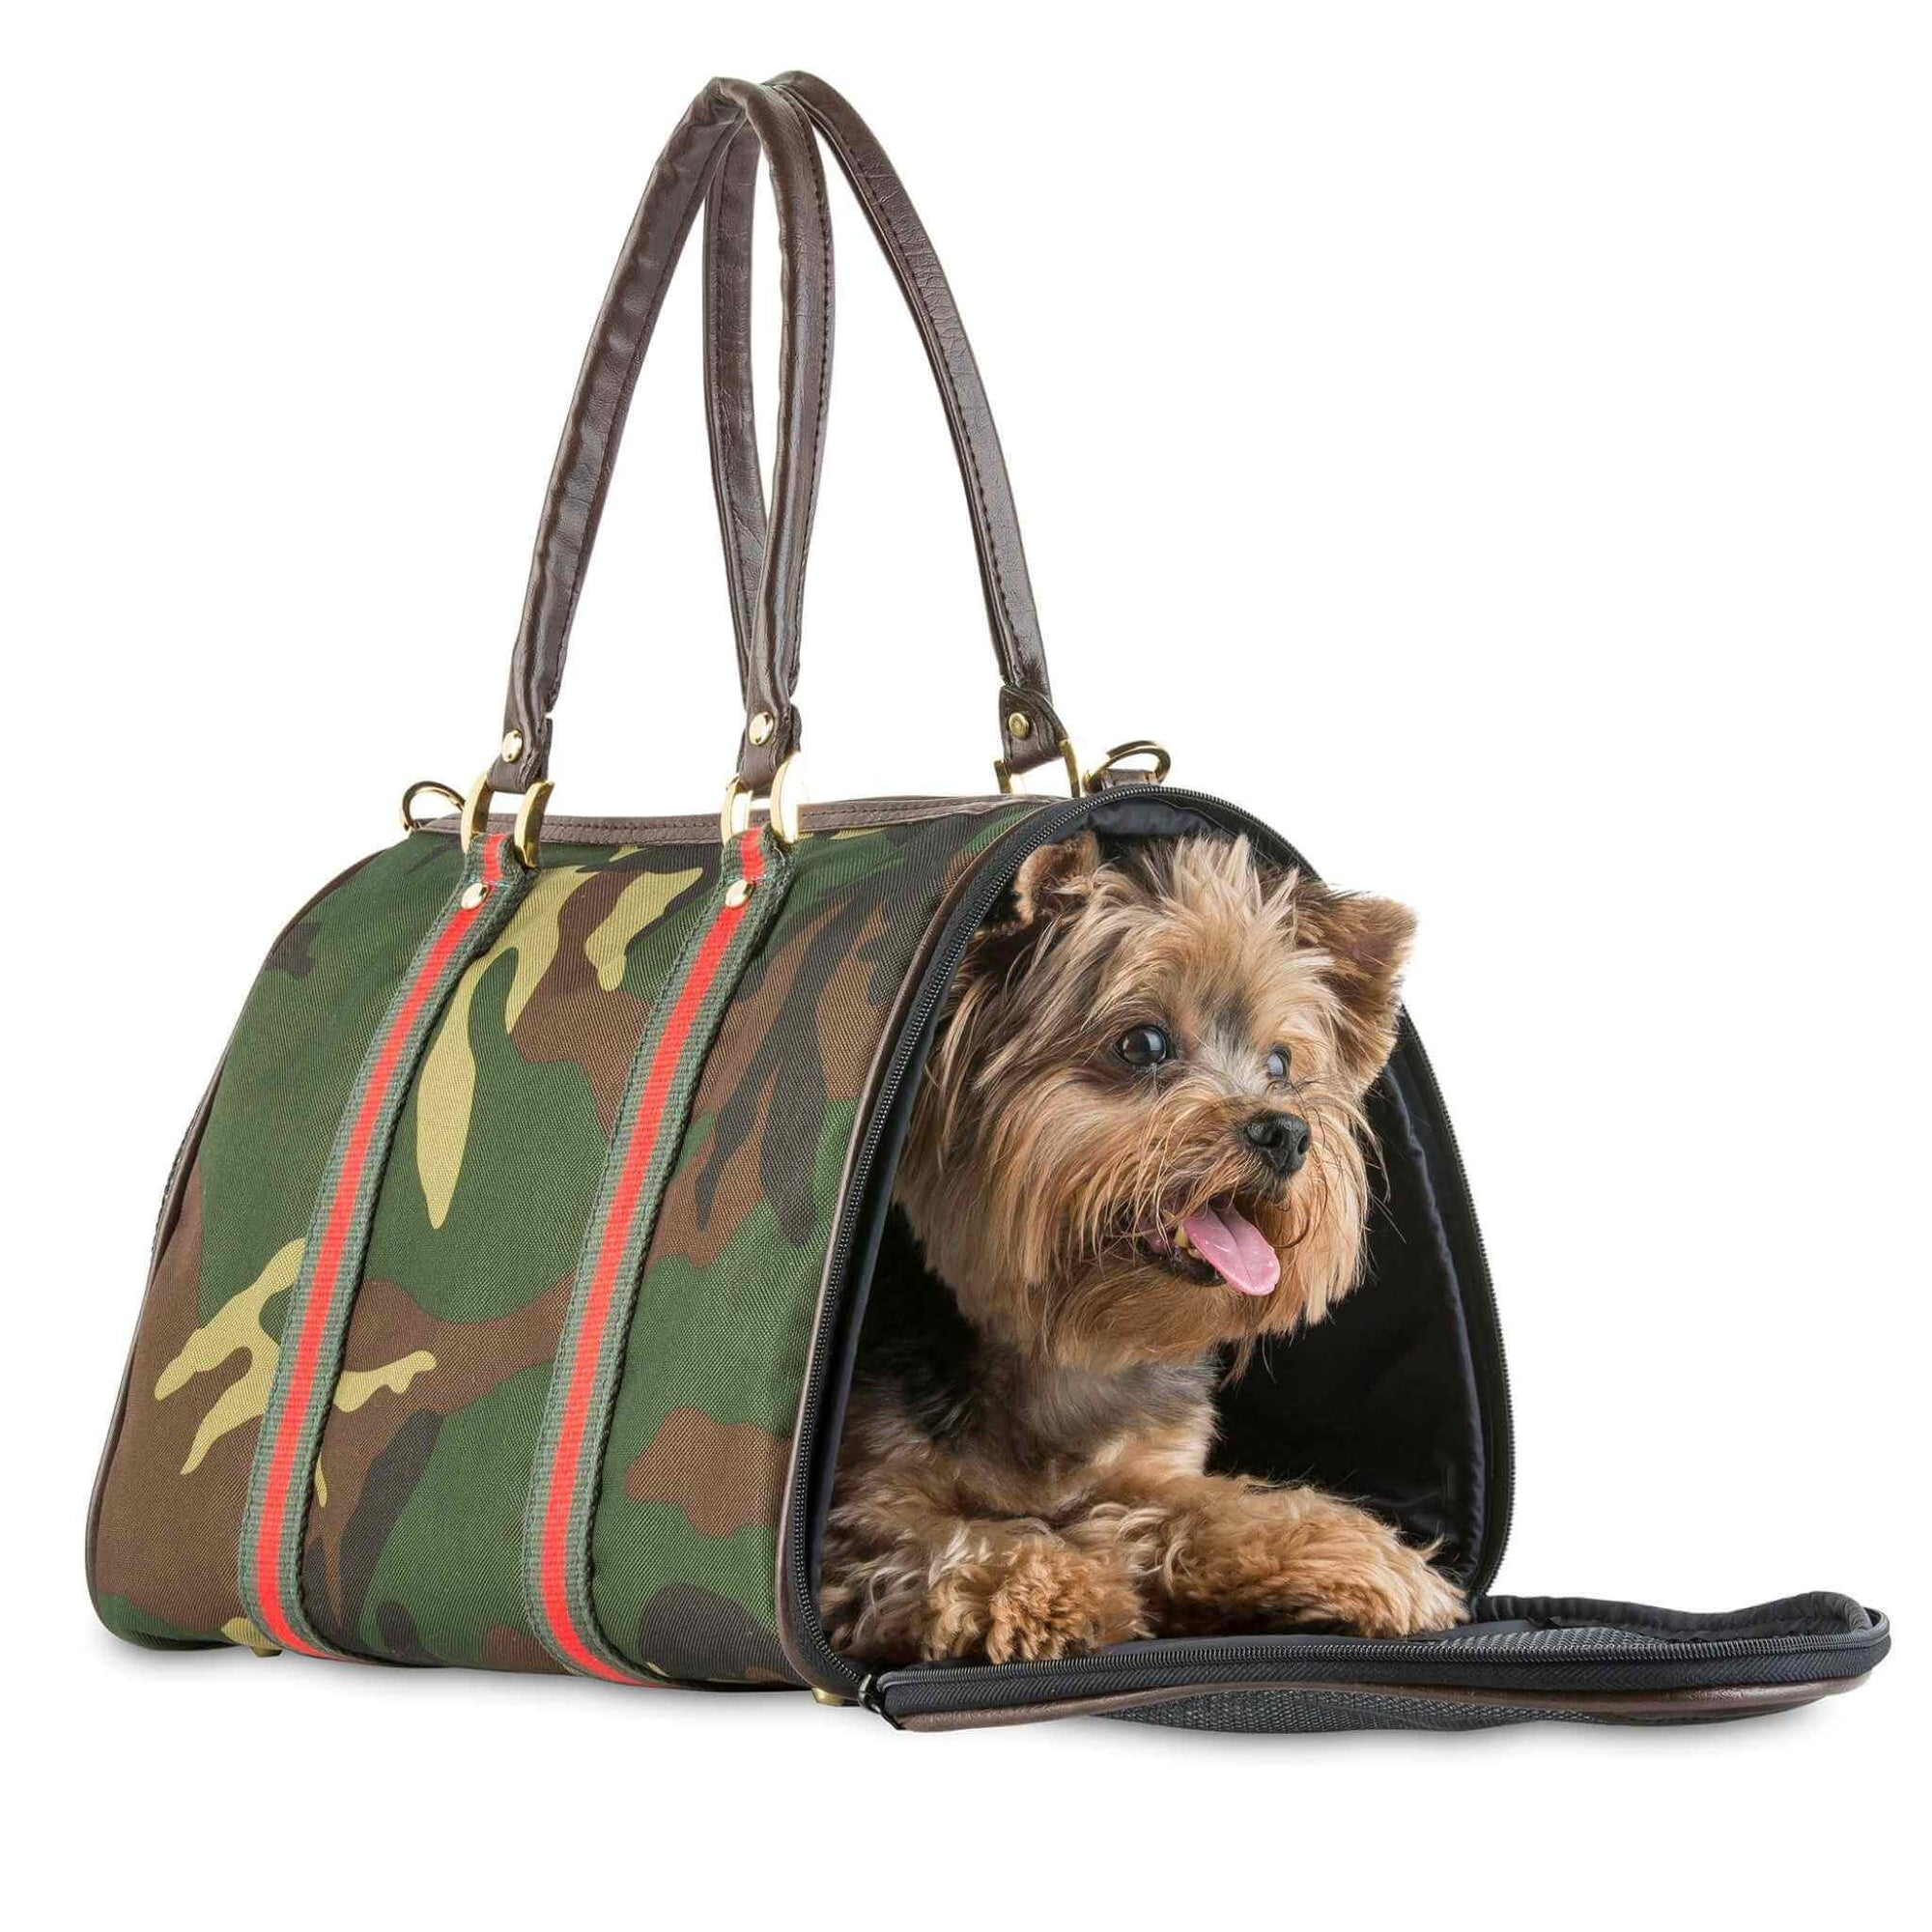 Petote JL Duffel Camo Small Dog Carrier - with Yorkie inside